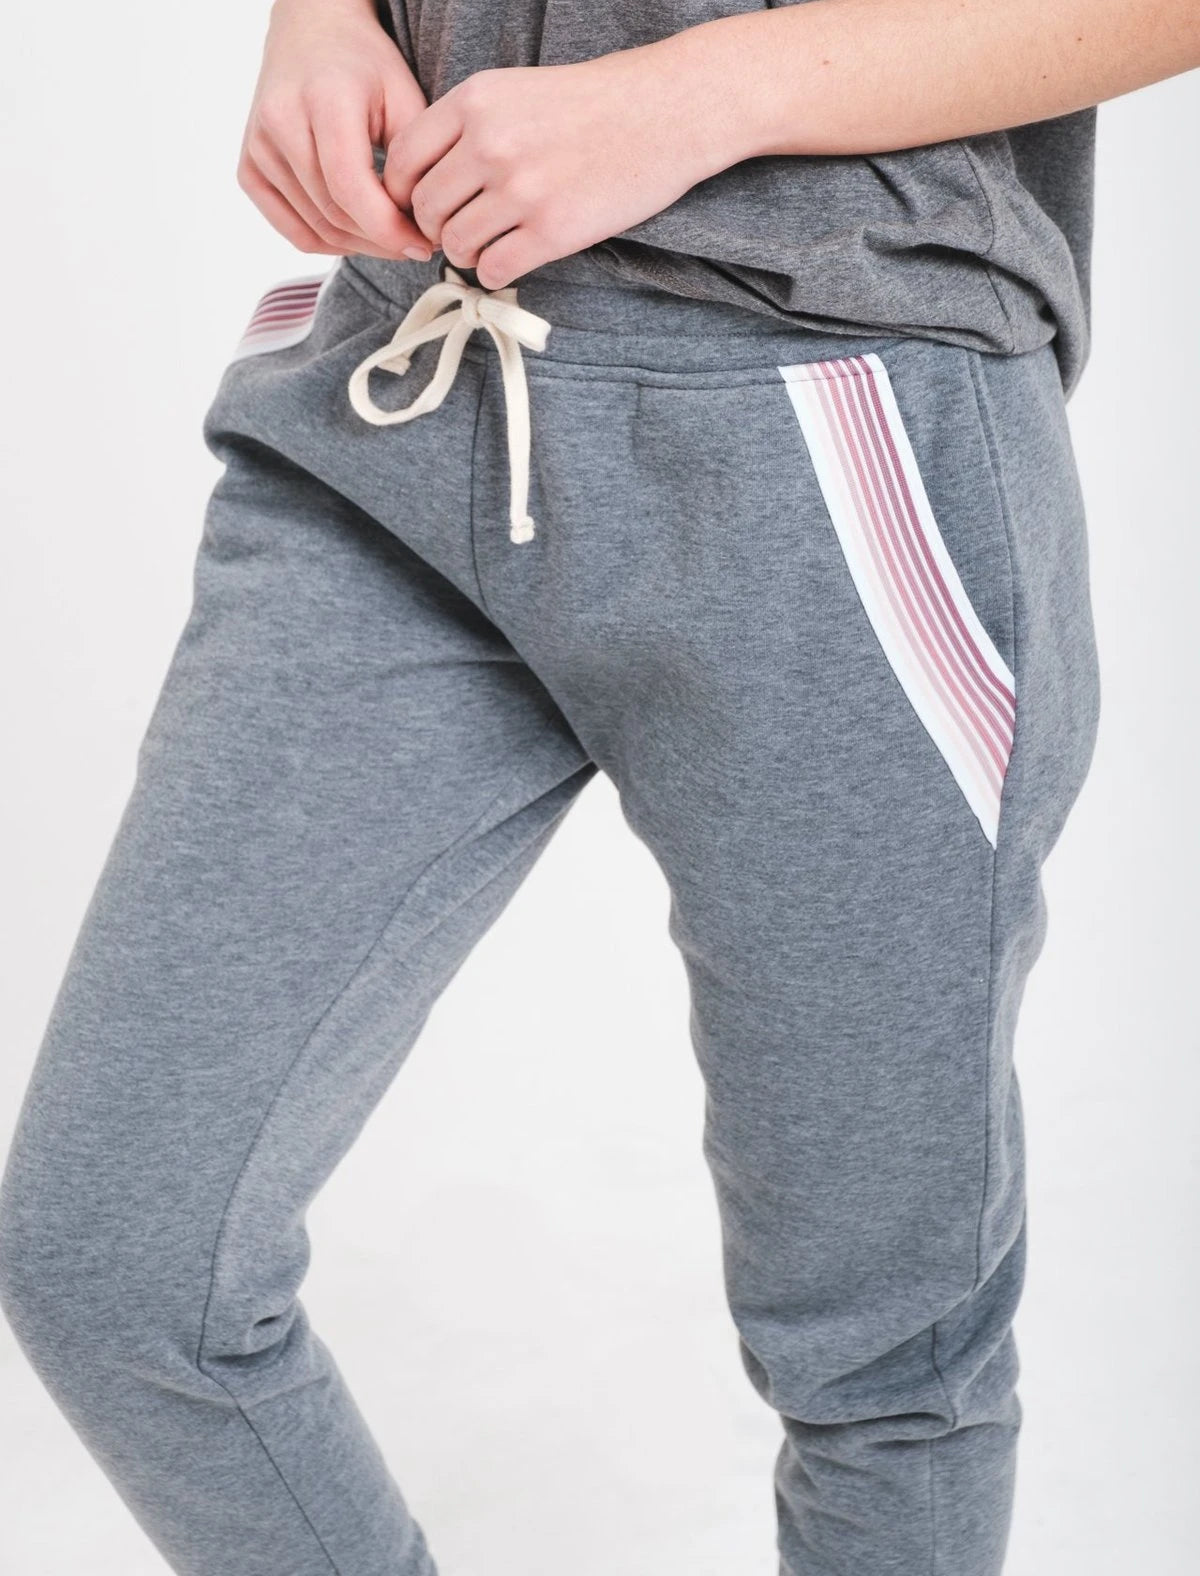 Cyber Monday Women's Joggers Sale 2020 by Brooklyn Cloth